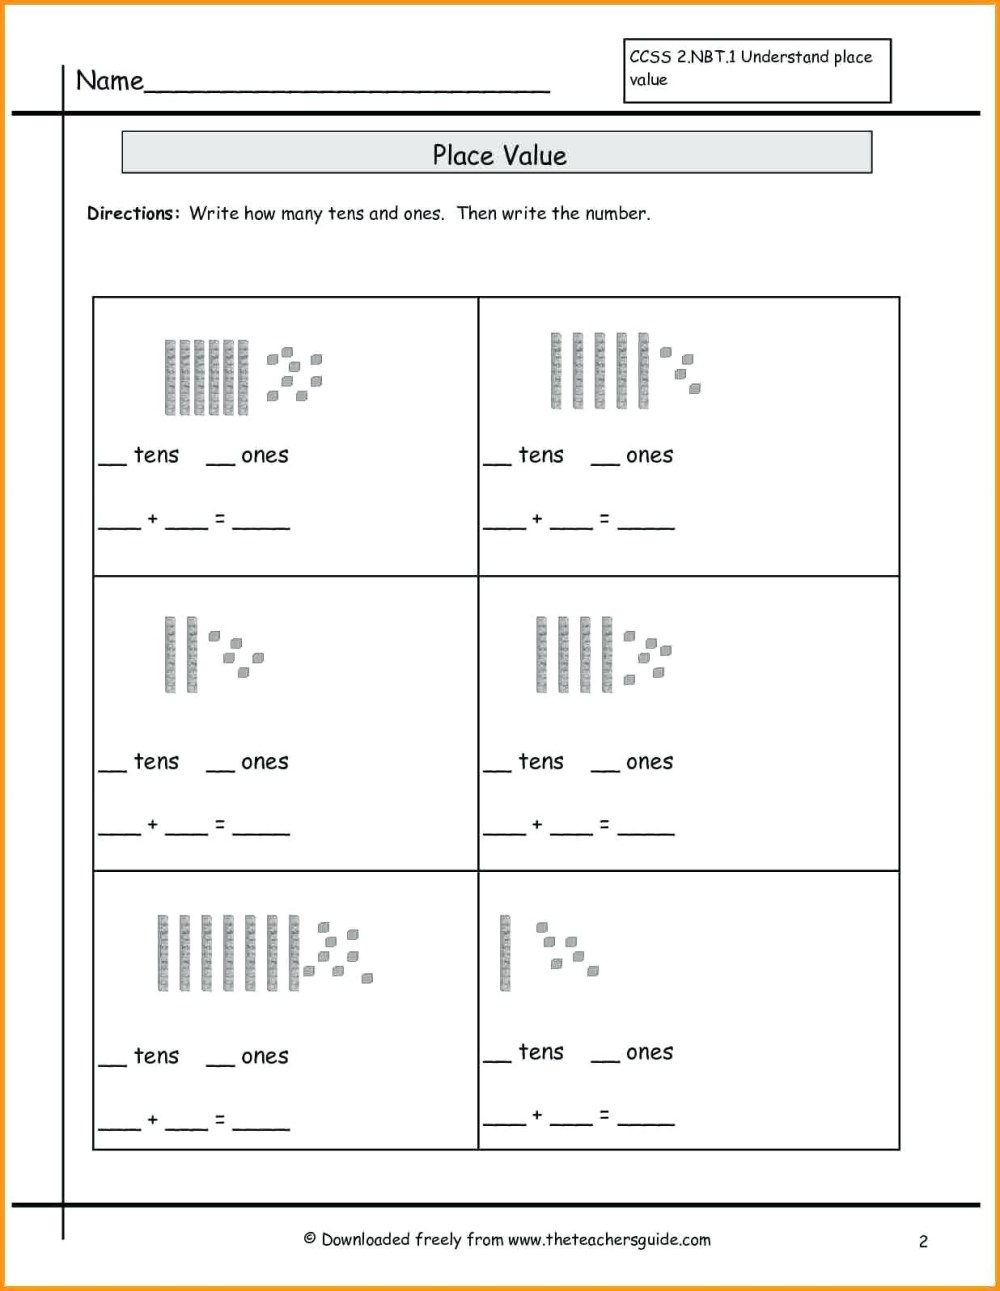 medium resolution of 4 Free Math Worksheets Second Grade 2 Subtraction Subtracting 1 Digit From  3 Digit Missing Number - apocalomegaproductions.com